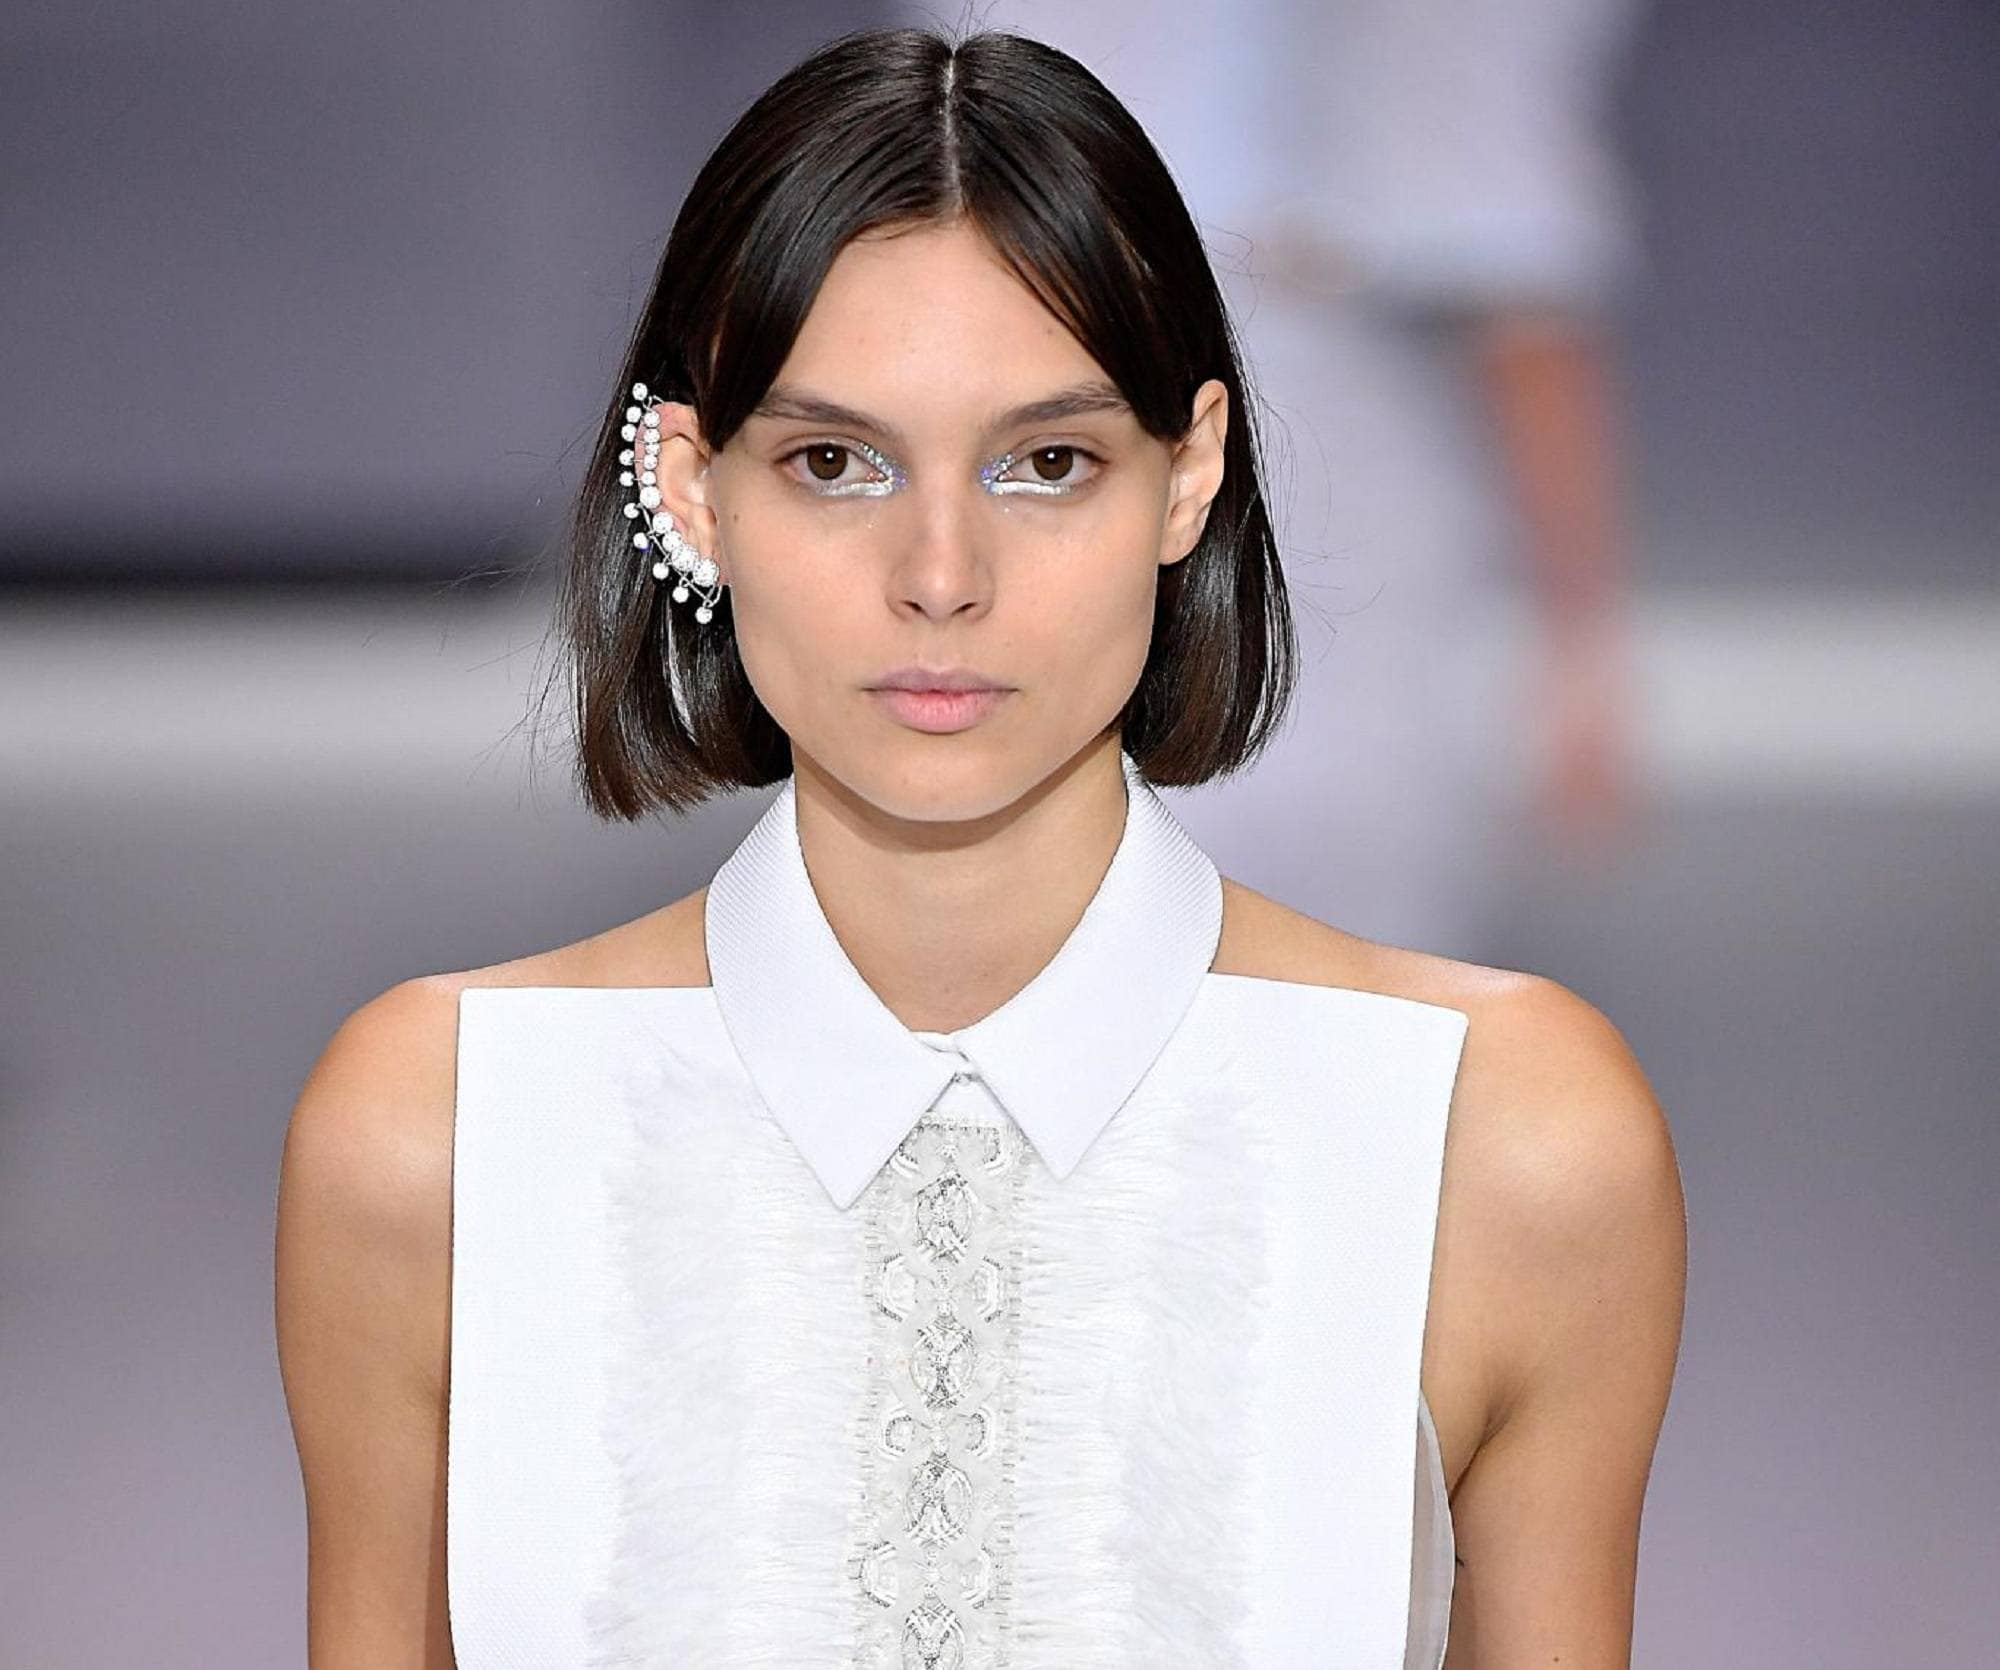 Elegant hairstyles for short hair: Closeup shot of a woman with straight black bob wearing white